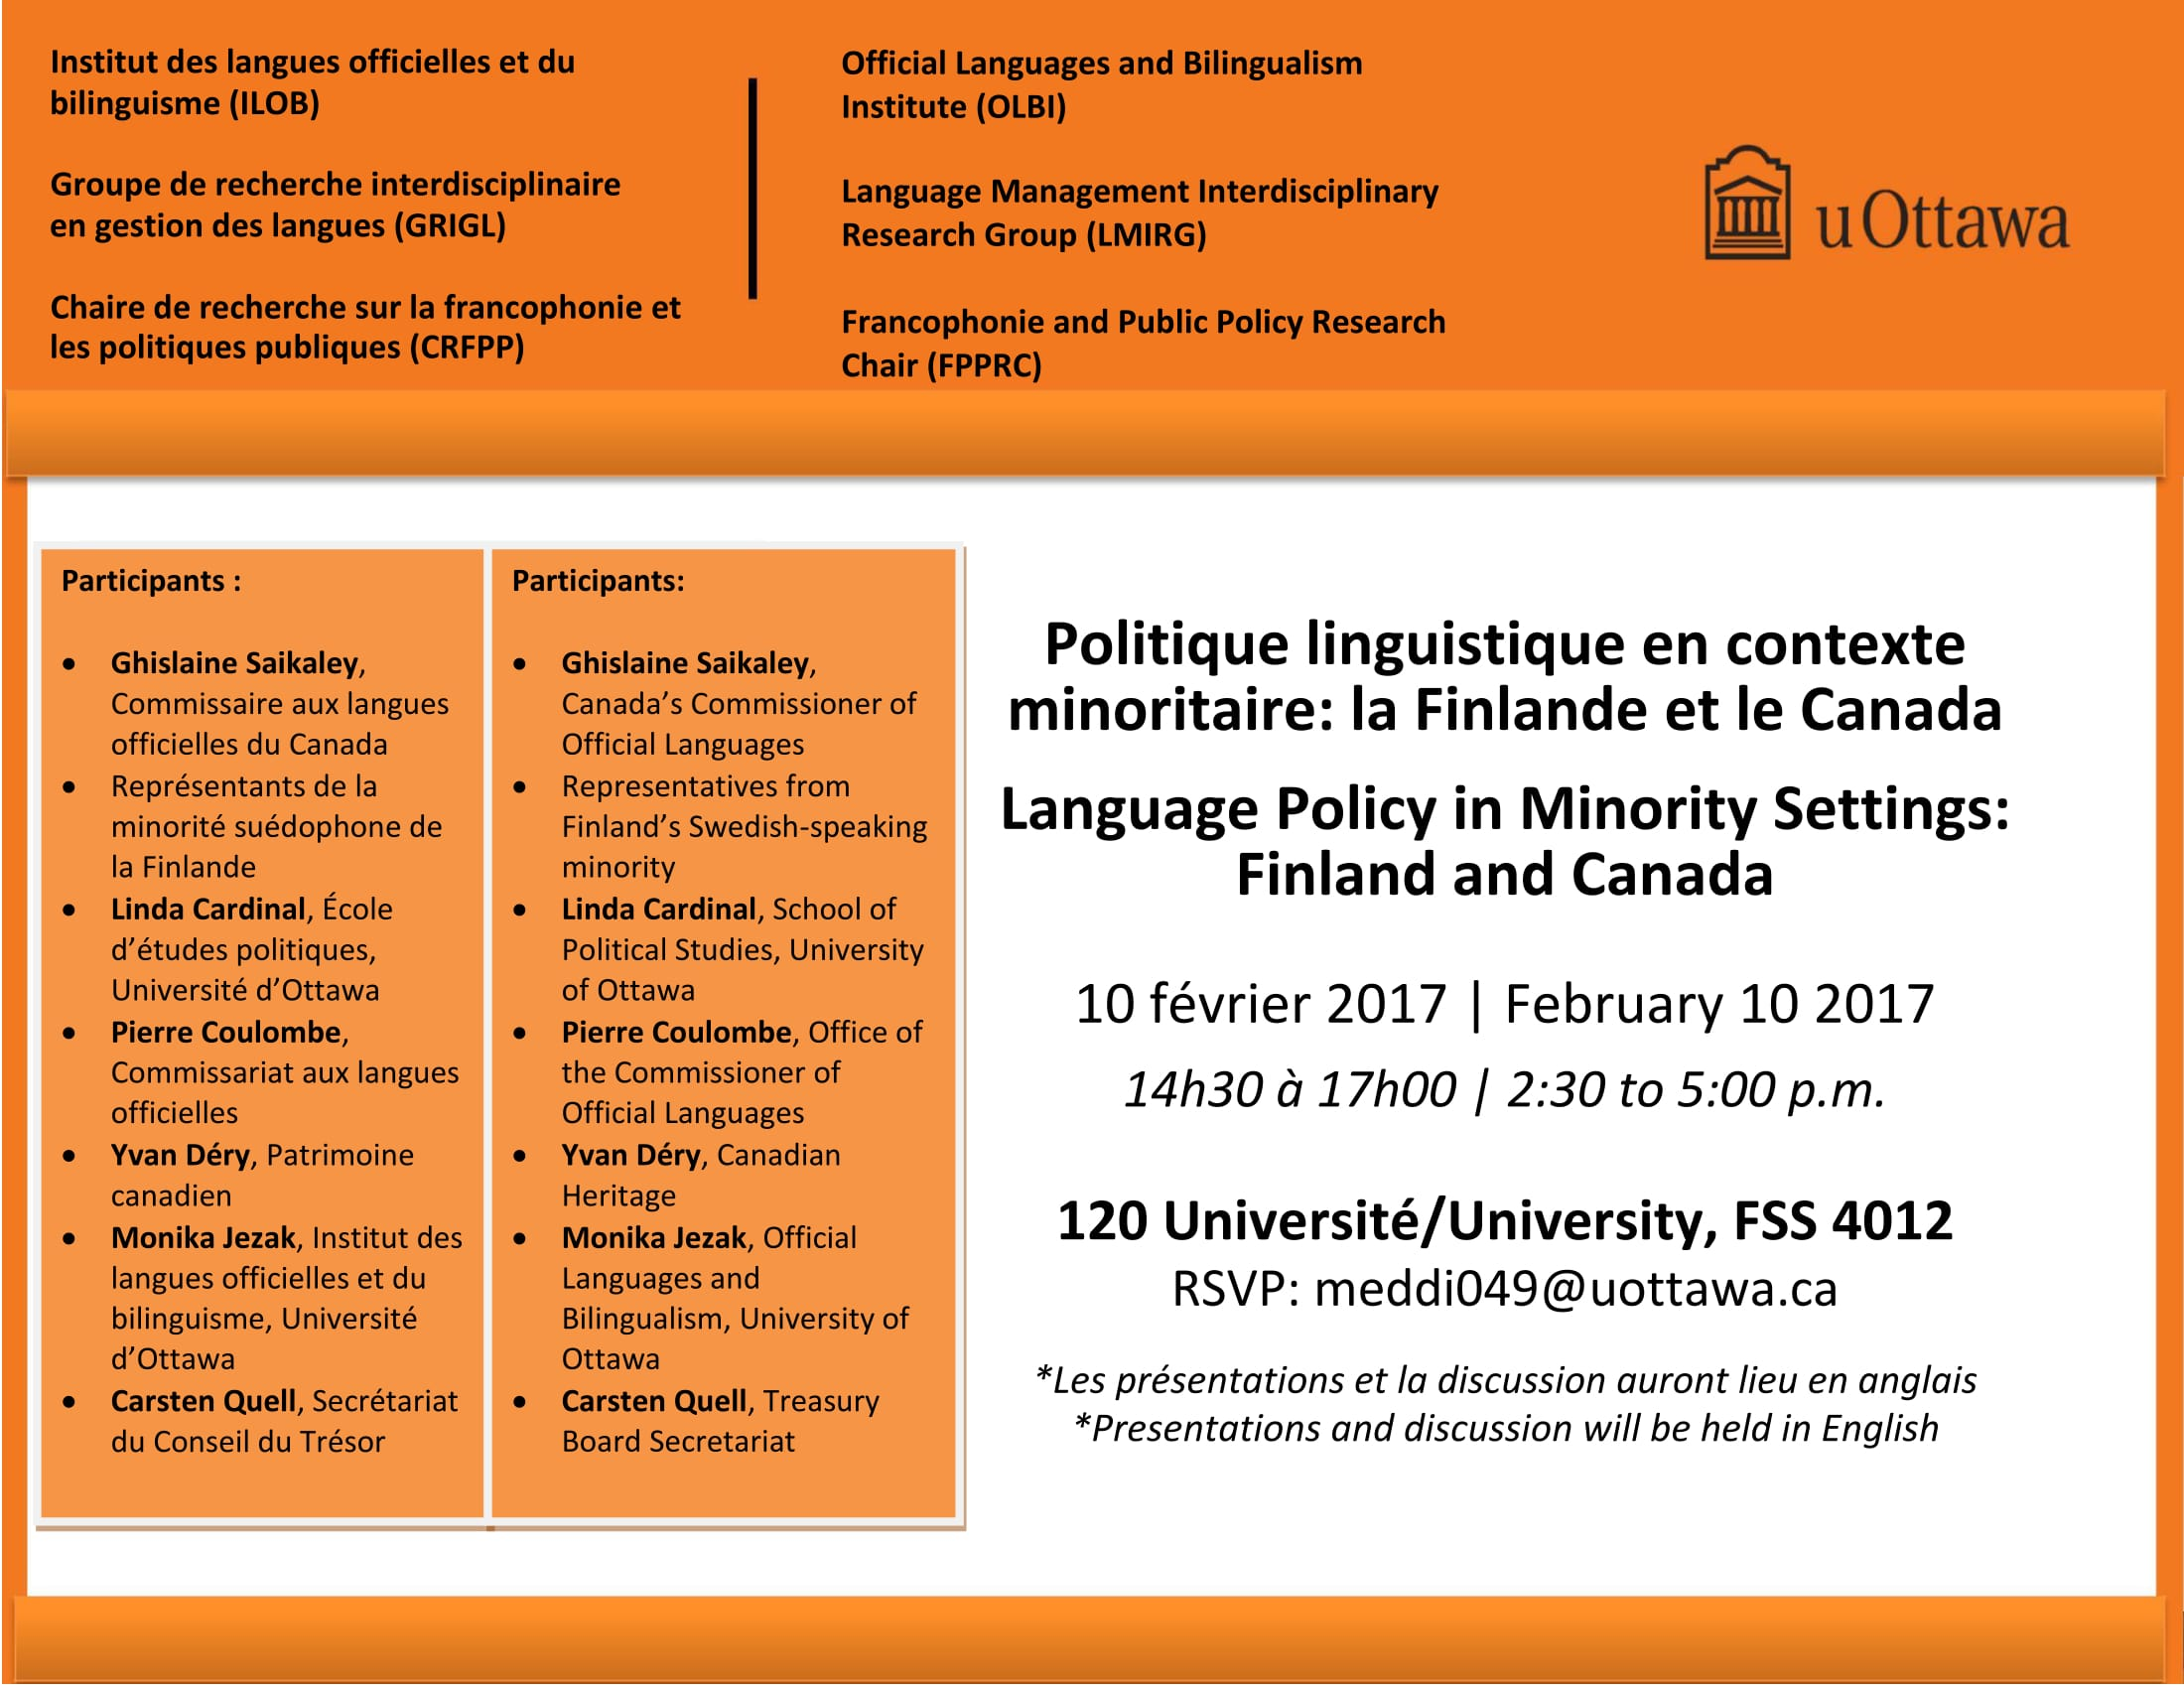 affiche_language_policy_in_minority_settings